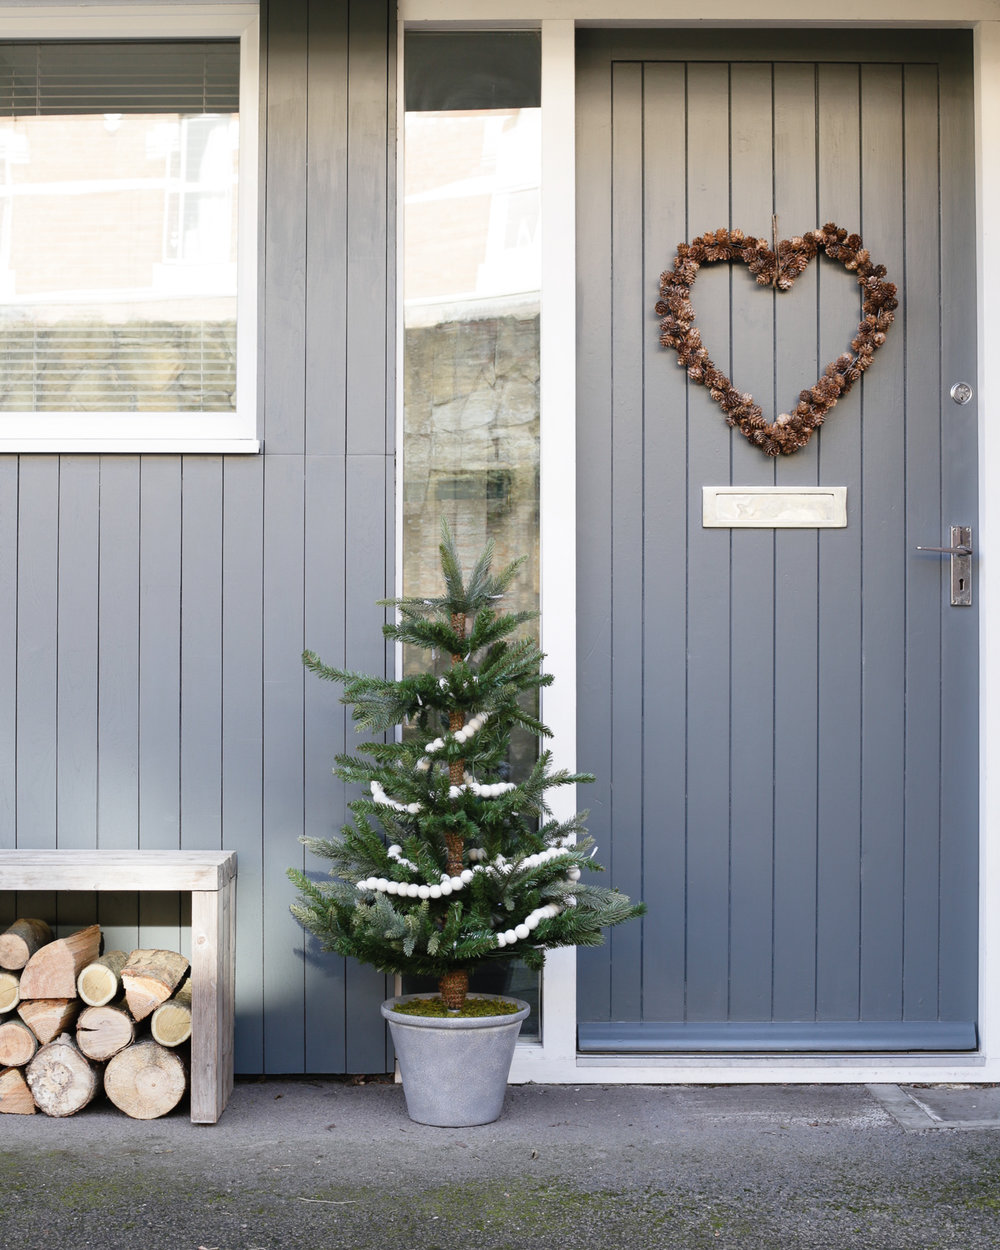 Festive door wreath and Christmas tree | Design Hunter